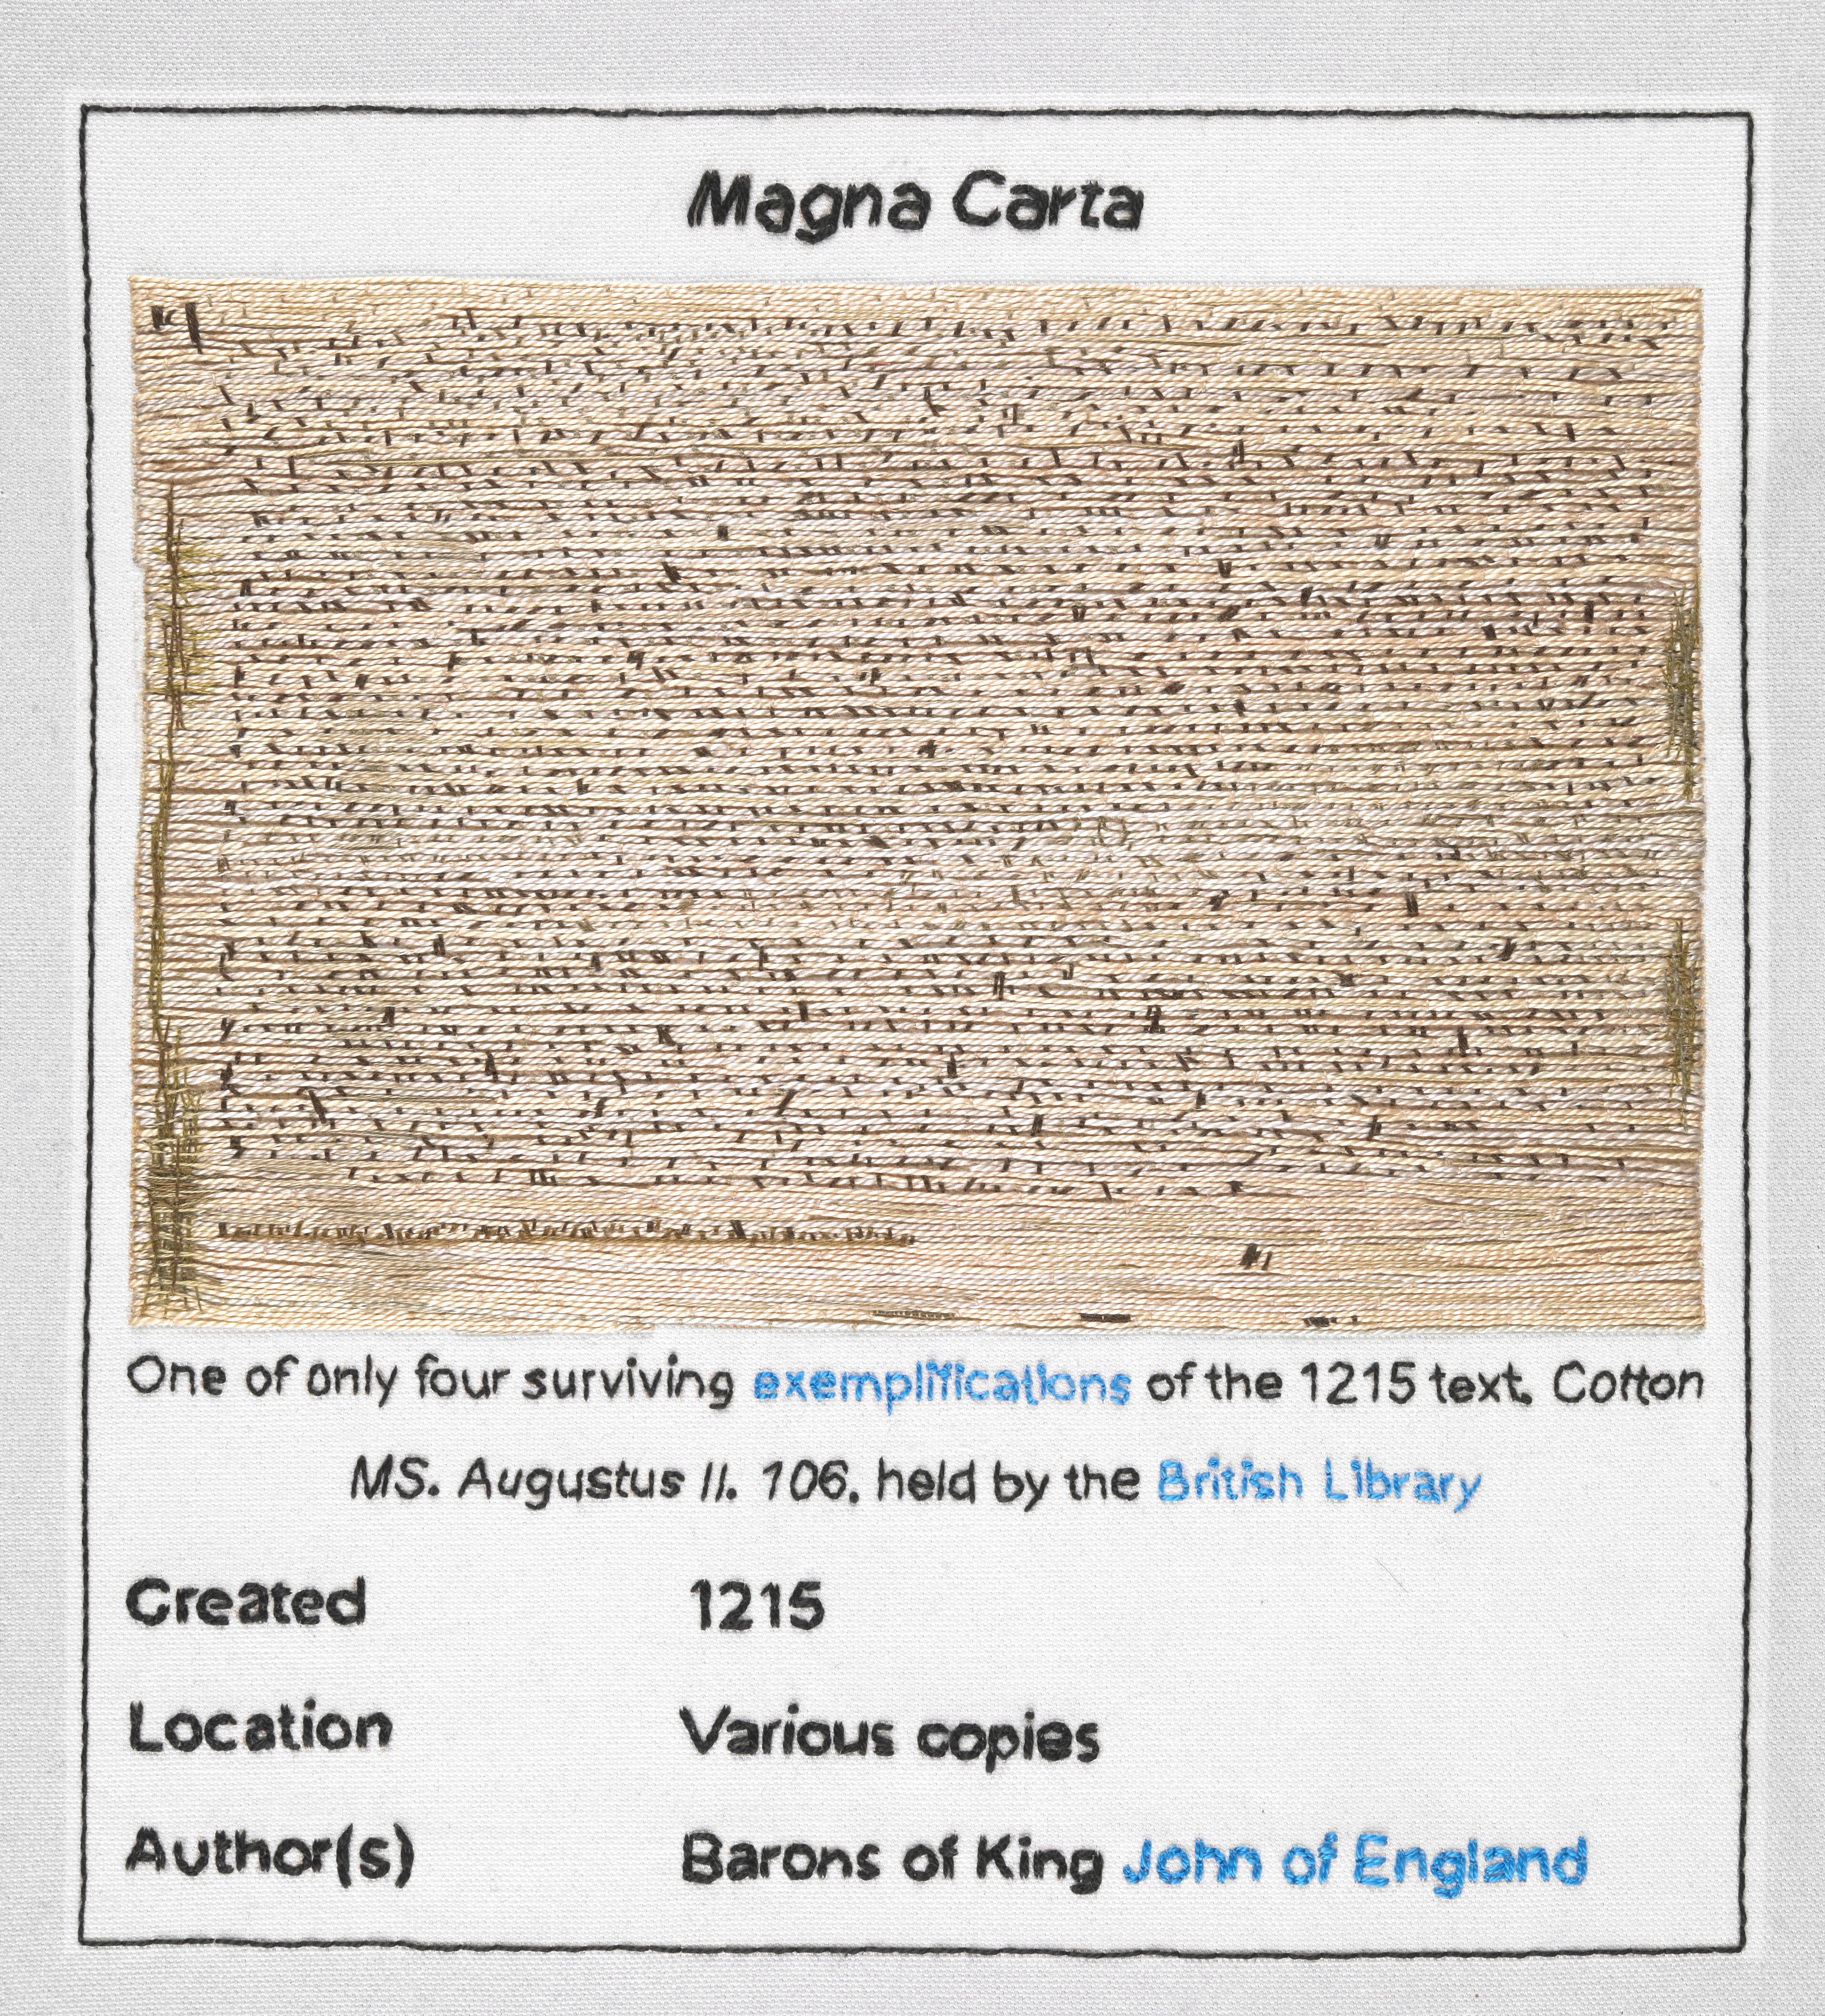 Detail of one of only four surviving 1215 Magna Carta documents, held by the British Library. Stitched by Pam Keeling, Embroiderers' Guild (East Midlands Region). Part of Magna Carta (An Embroidery) by Cornelia Parker Photograph © British Library